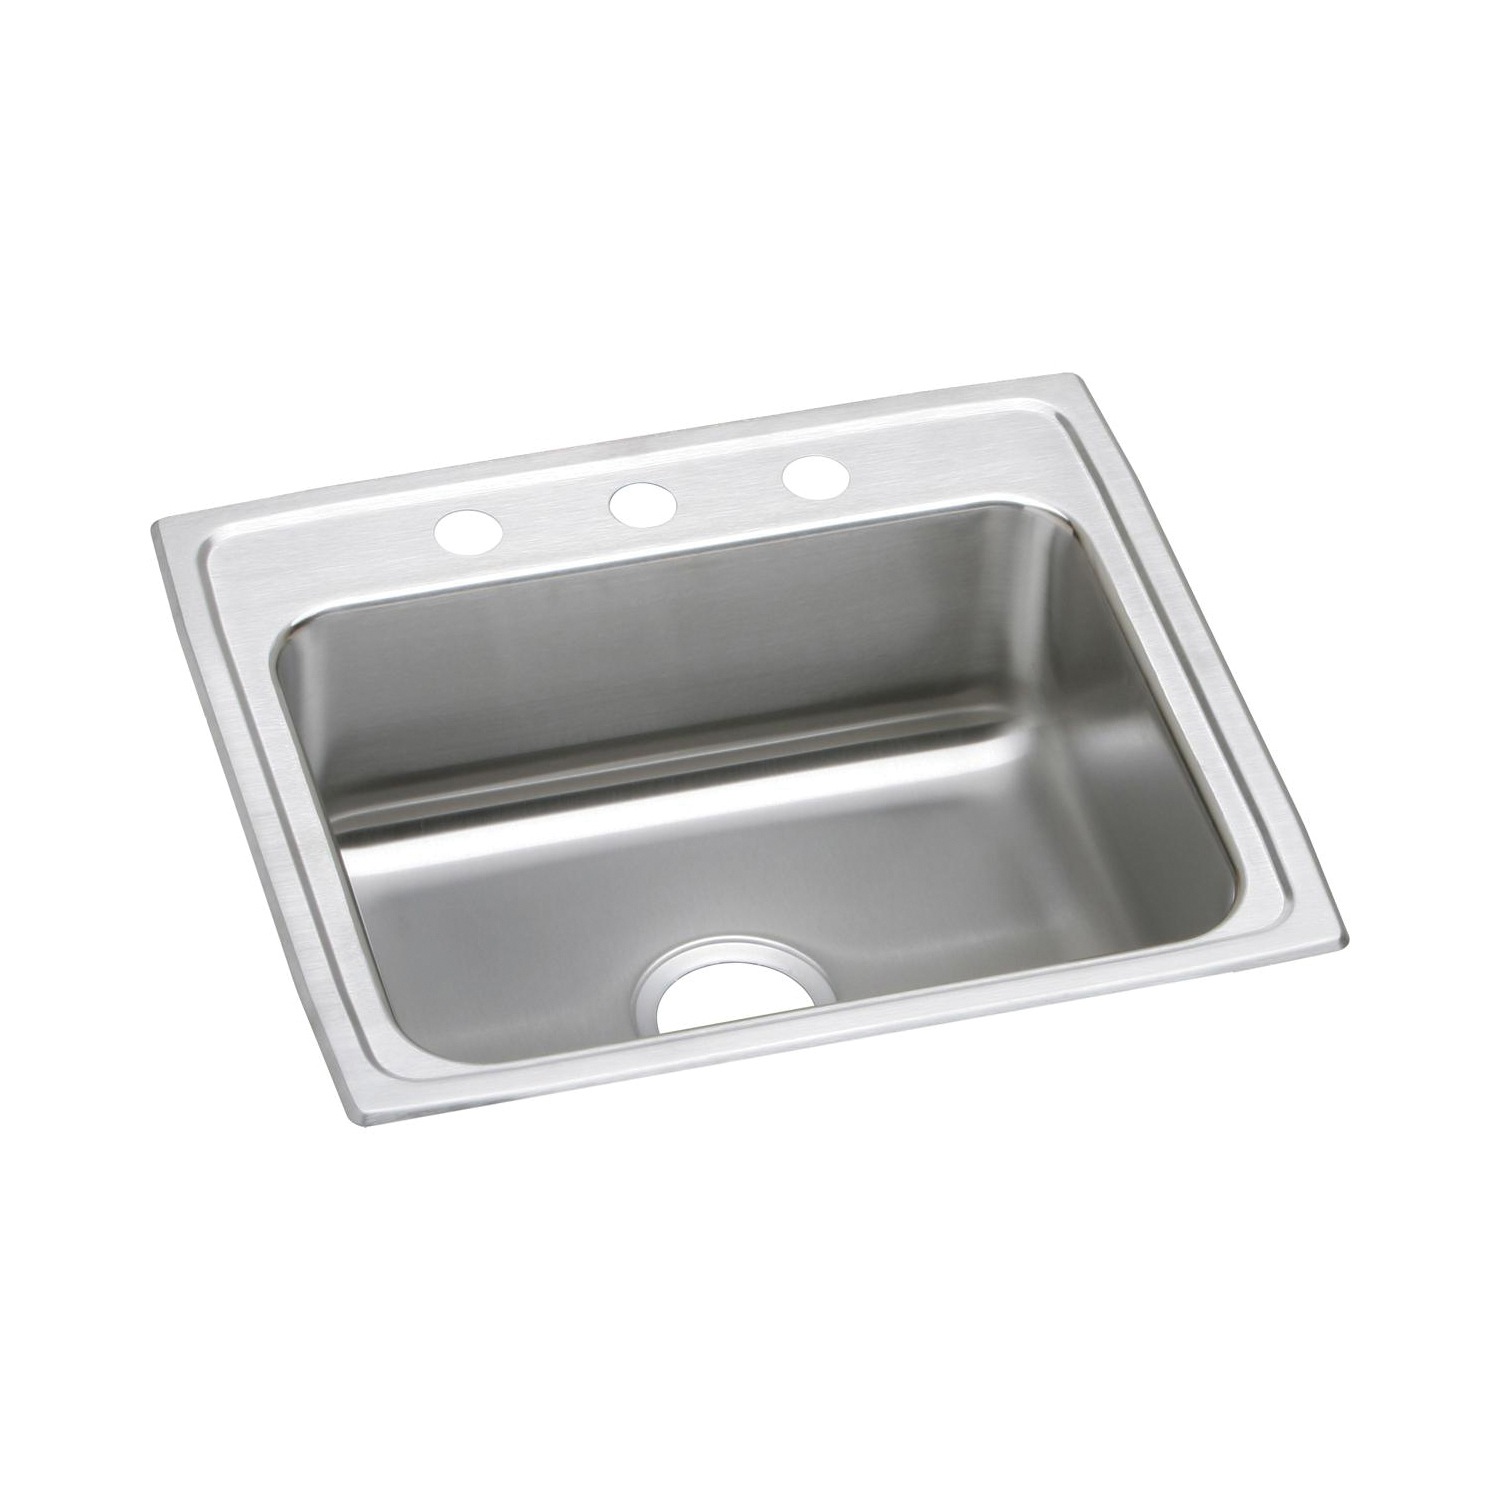 Elkay® LR22193 Gourmet Kitchen Sink, Rectangular, 3 Faucet Holes, 22 in W x 19-1/2 in D x 7-5/8 in H, Top Mount, Stainless Steel, Lustertone, Domestic